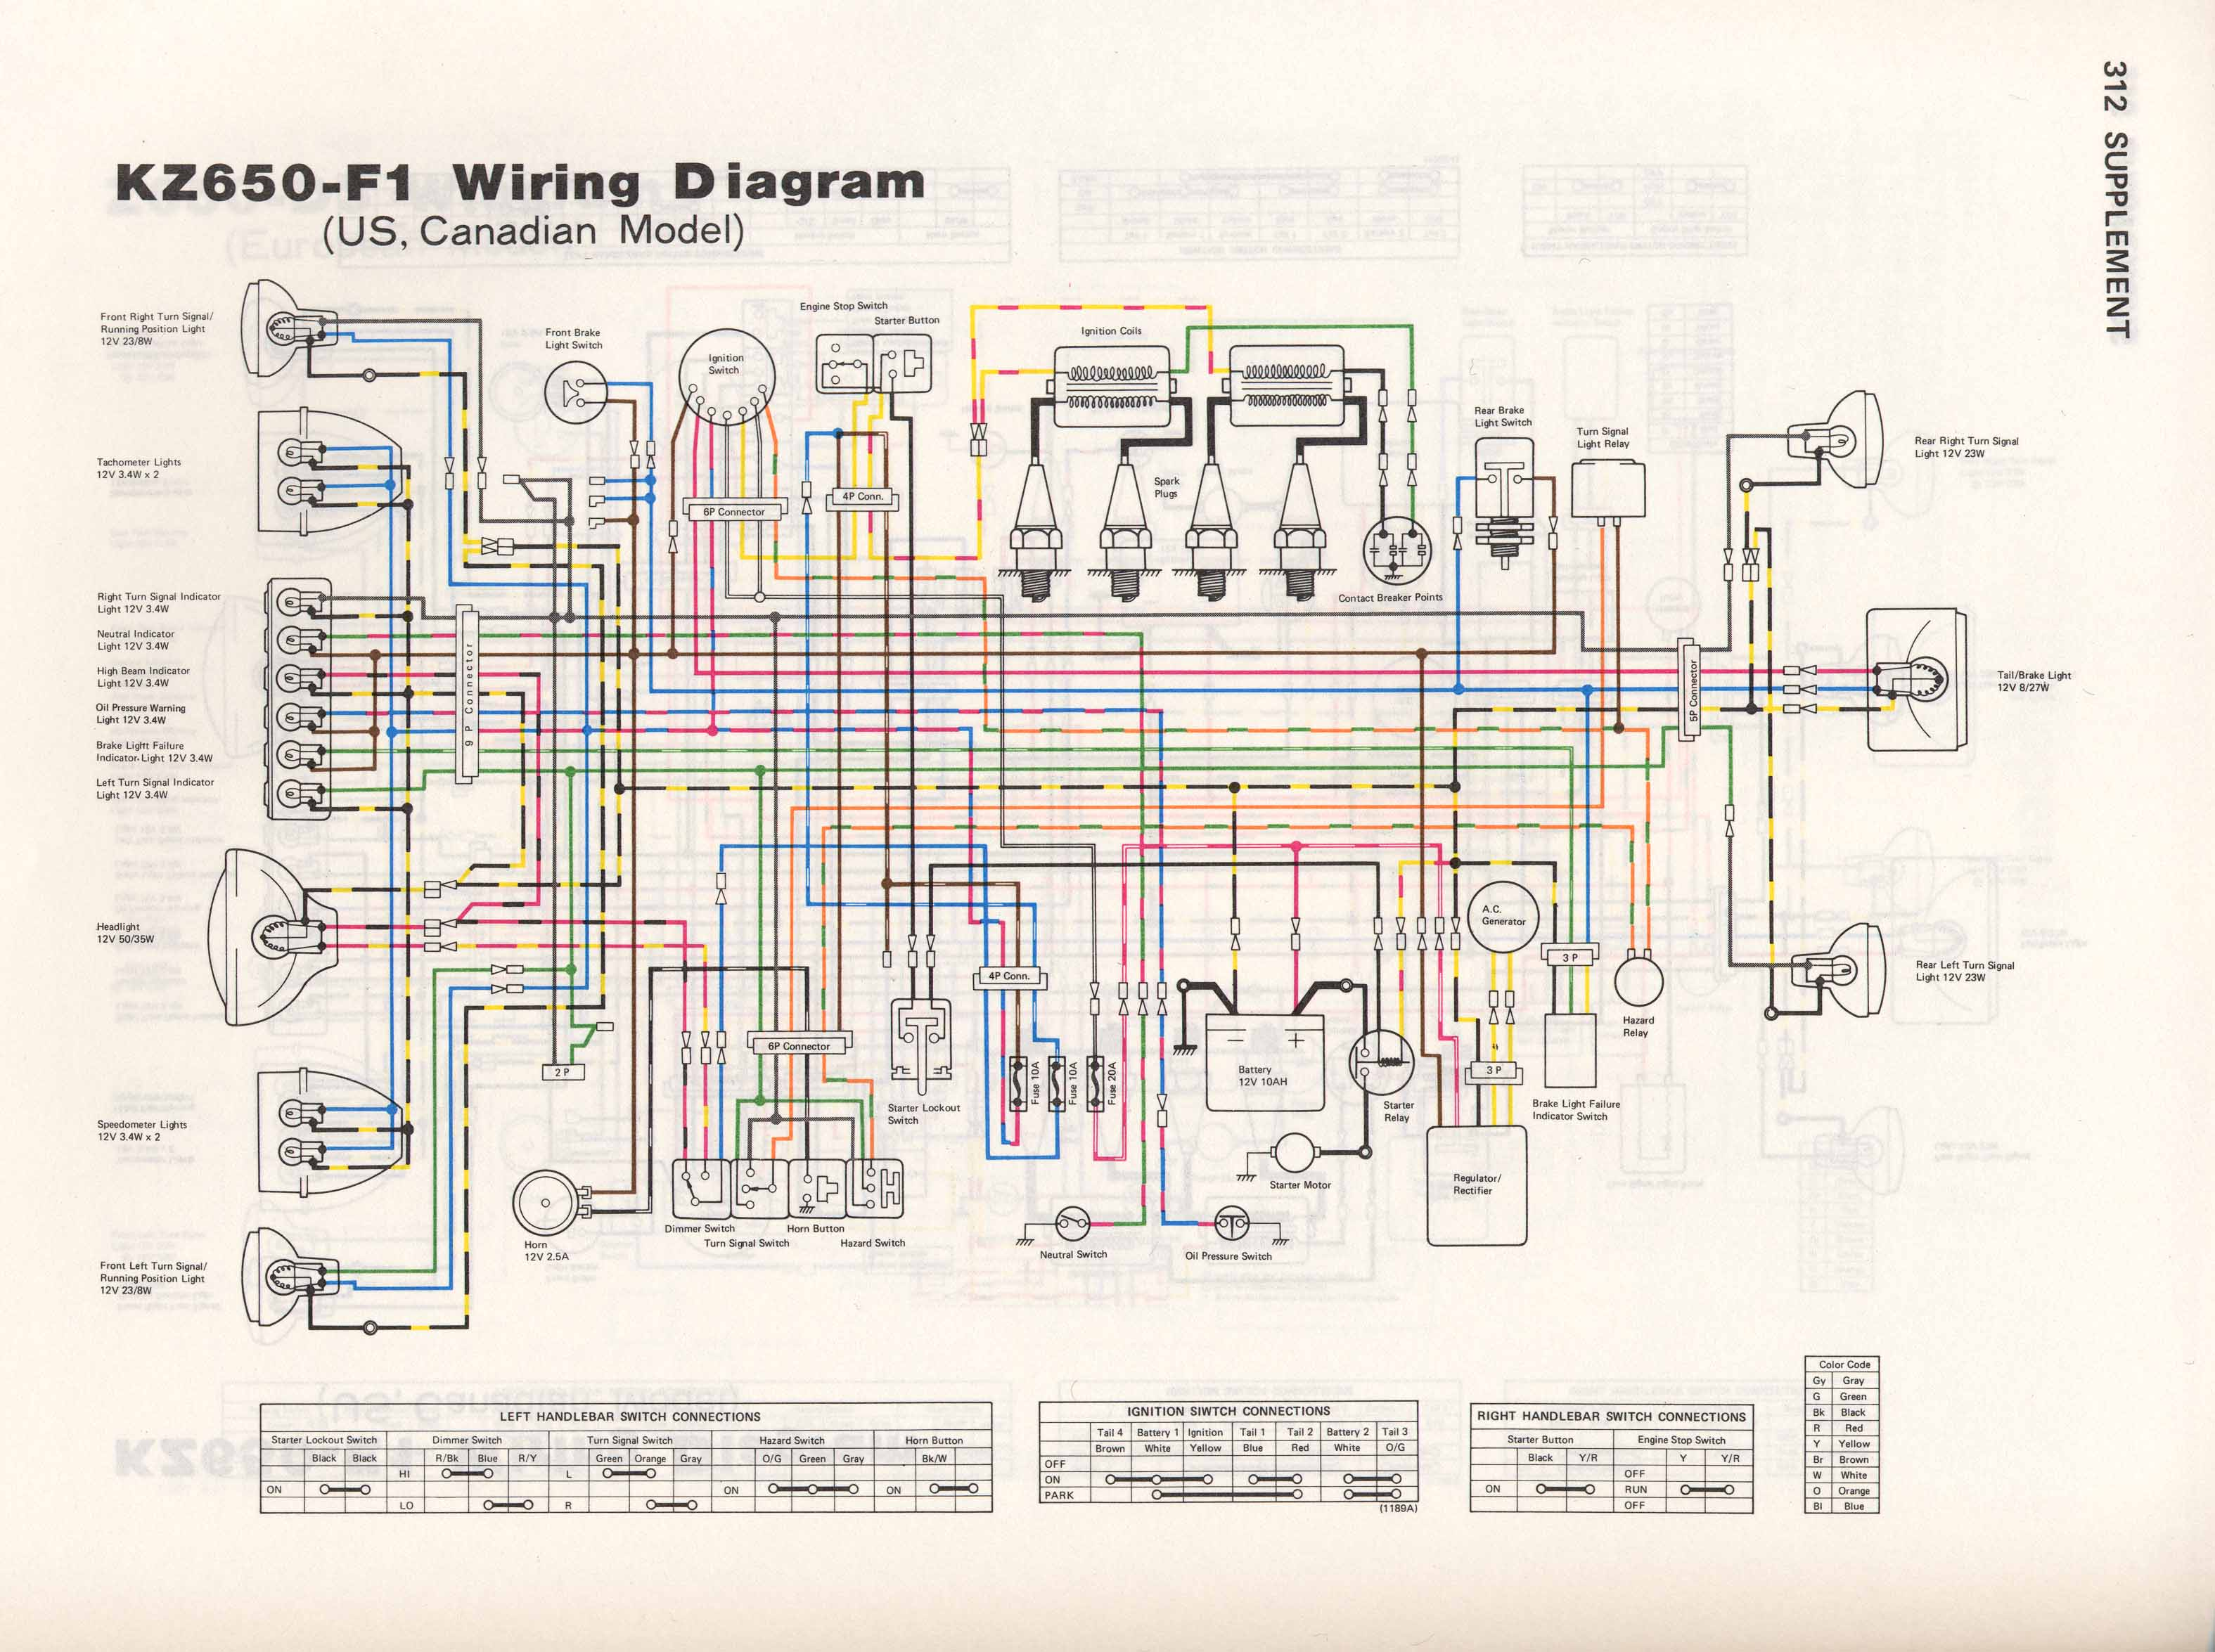 KZ650 F1 kz650 info wiring diagrams kawasaki wiring diagram at bayanpartner.co